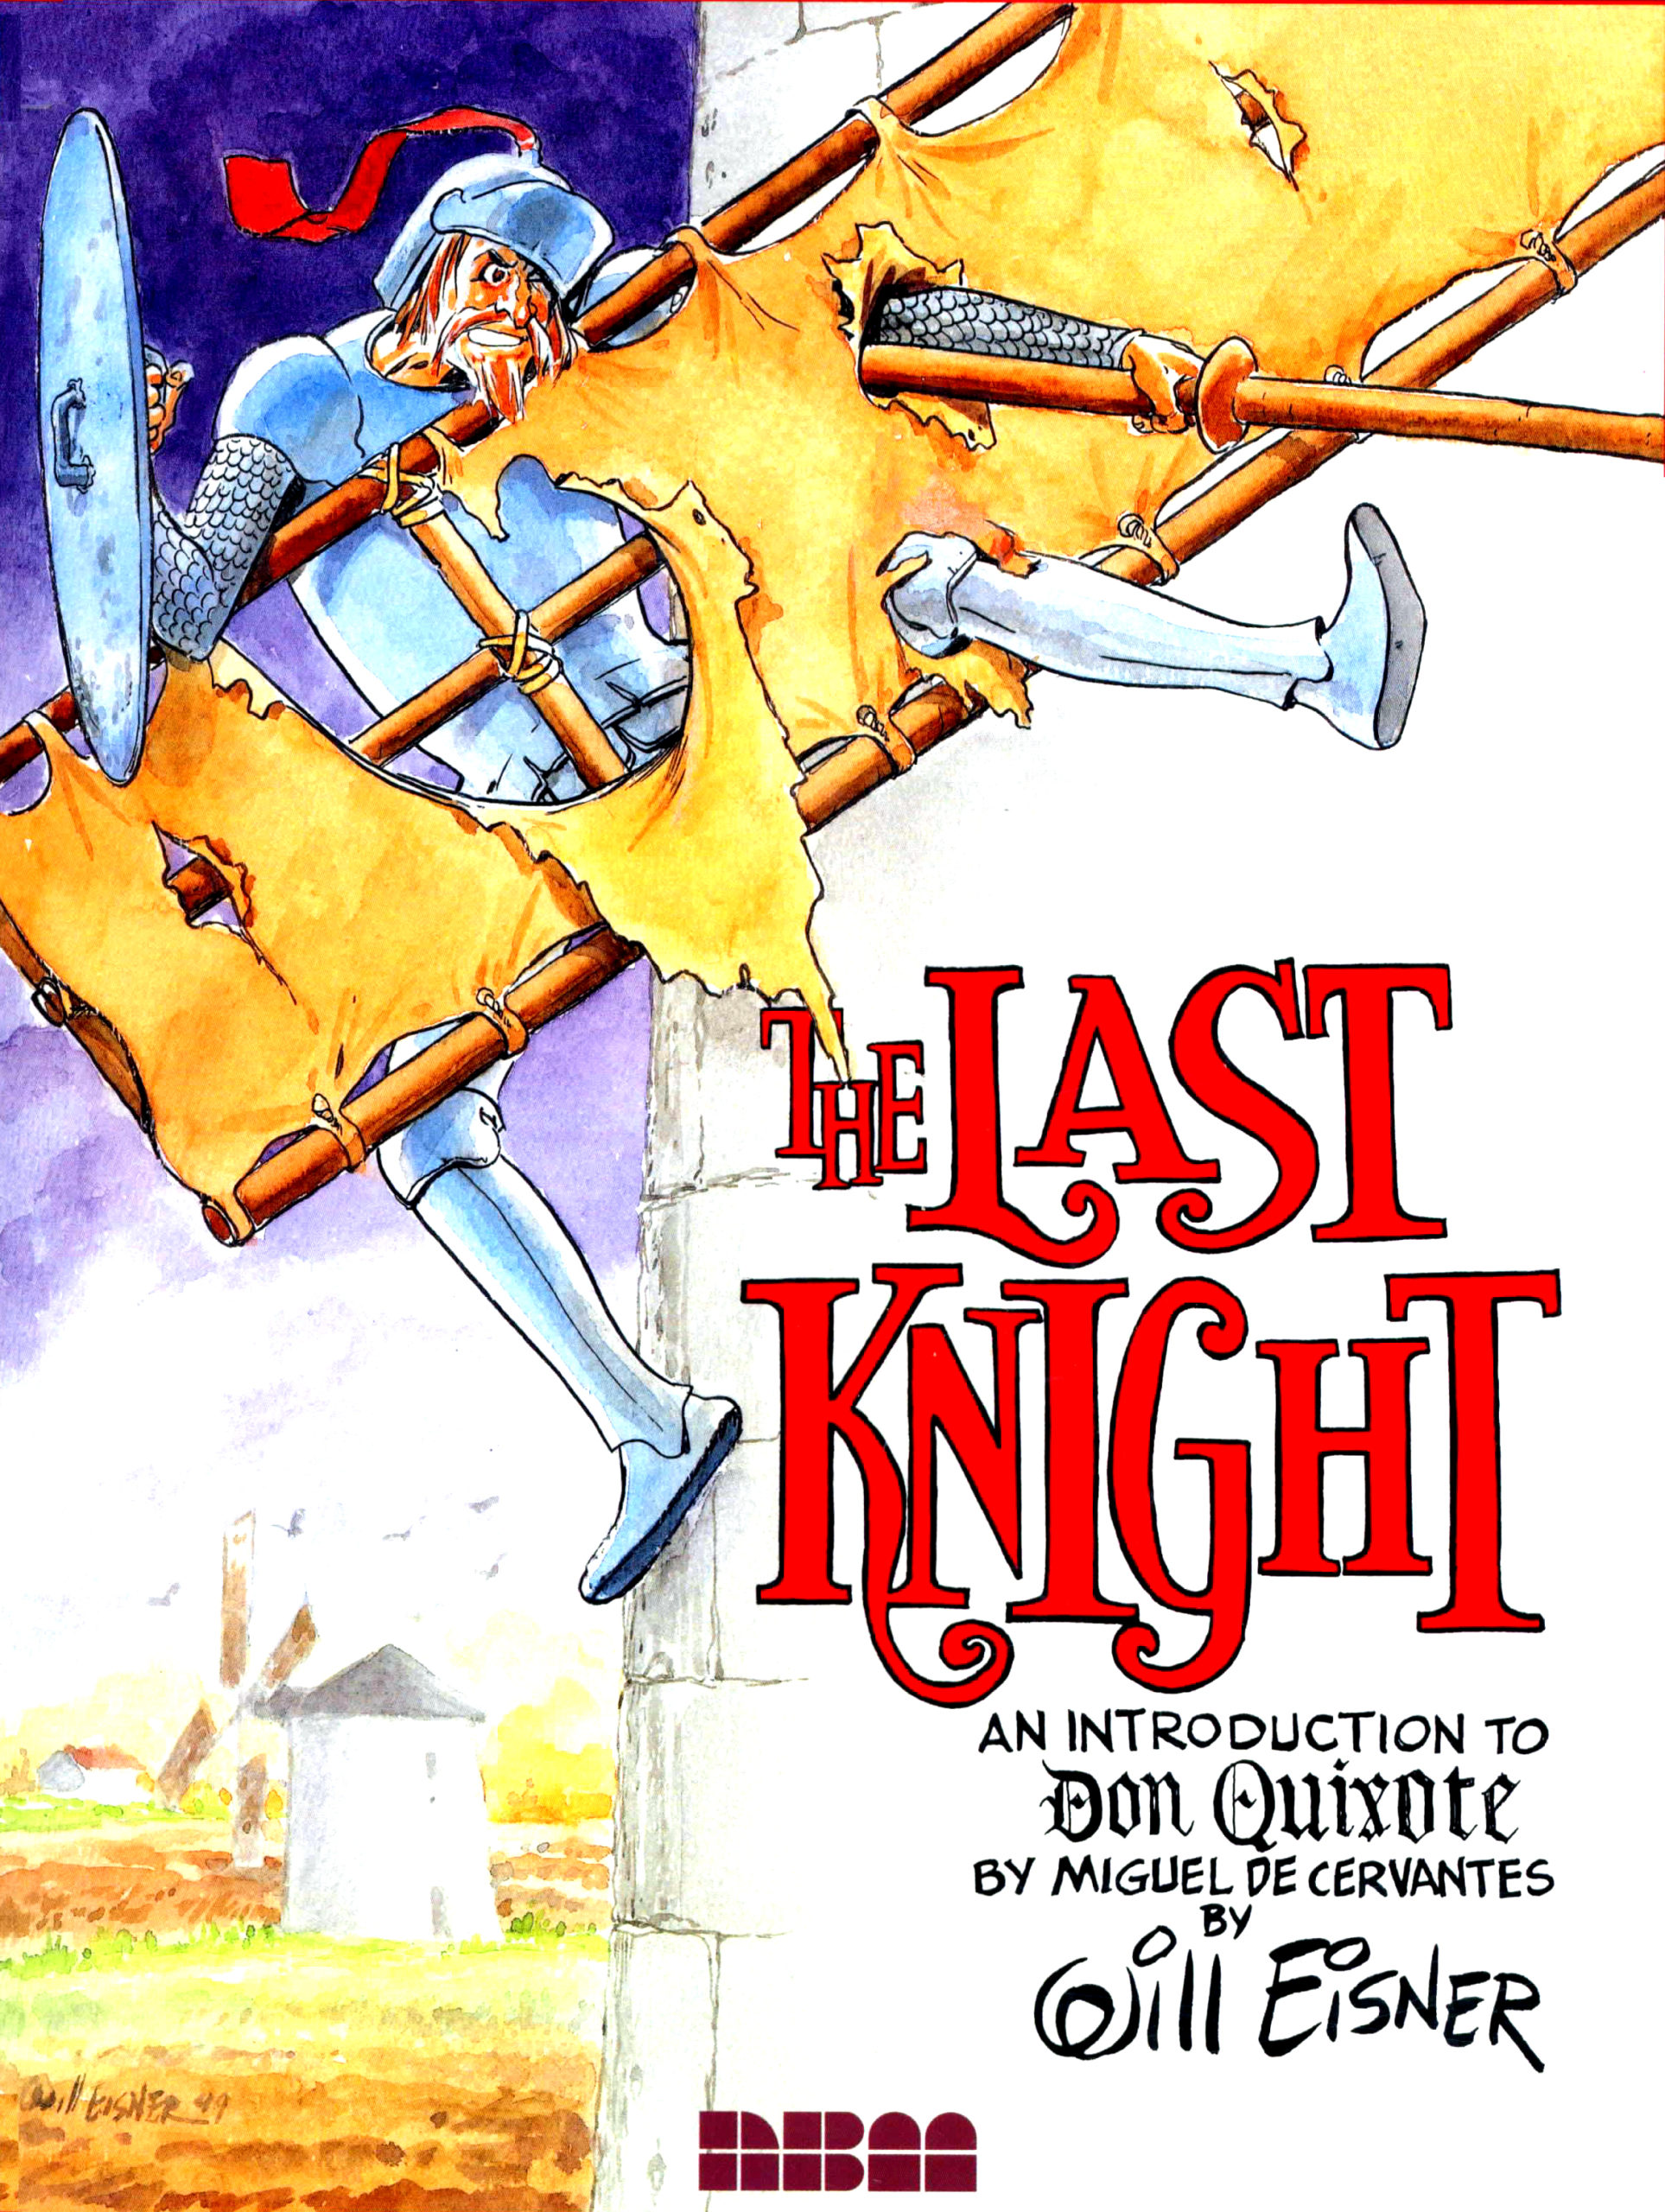 The Last Knight An Introduction to Don Quixote